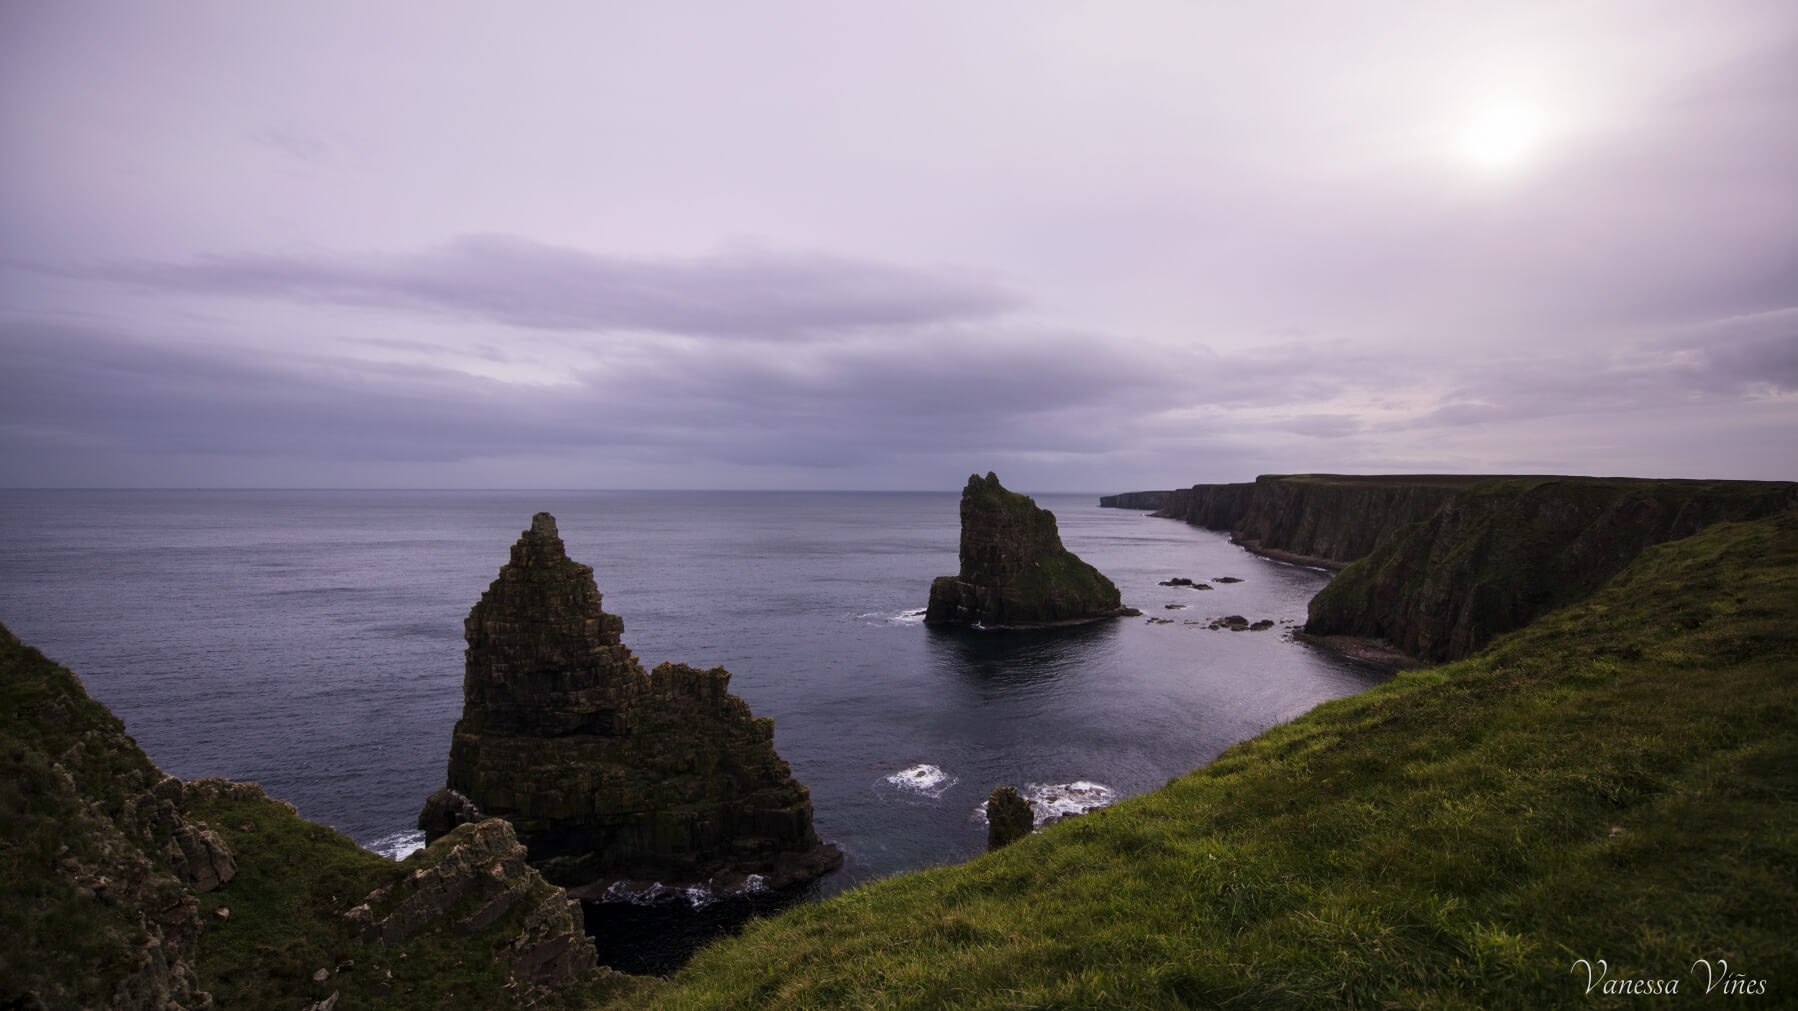 The Duncasby Stacks in John O'Groats